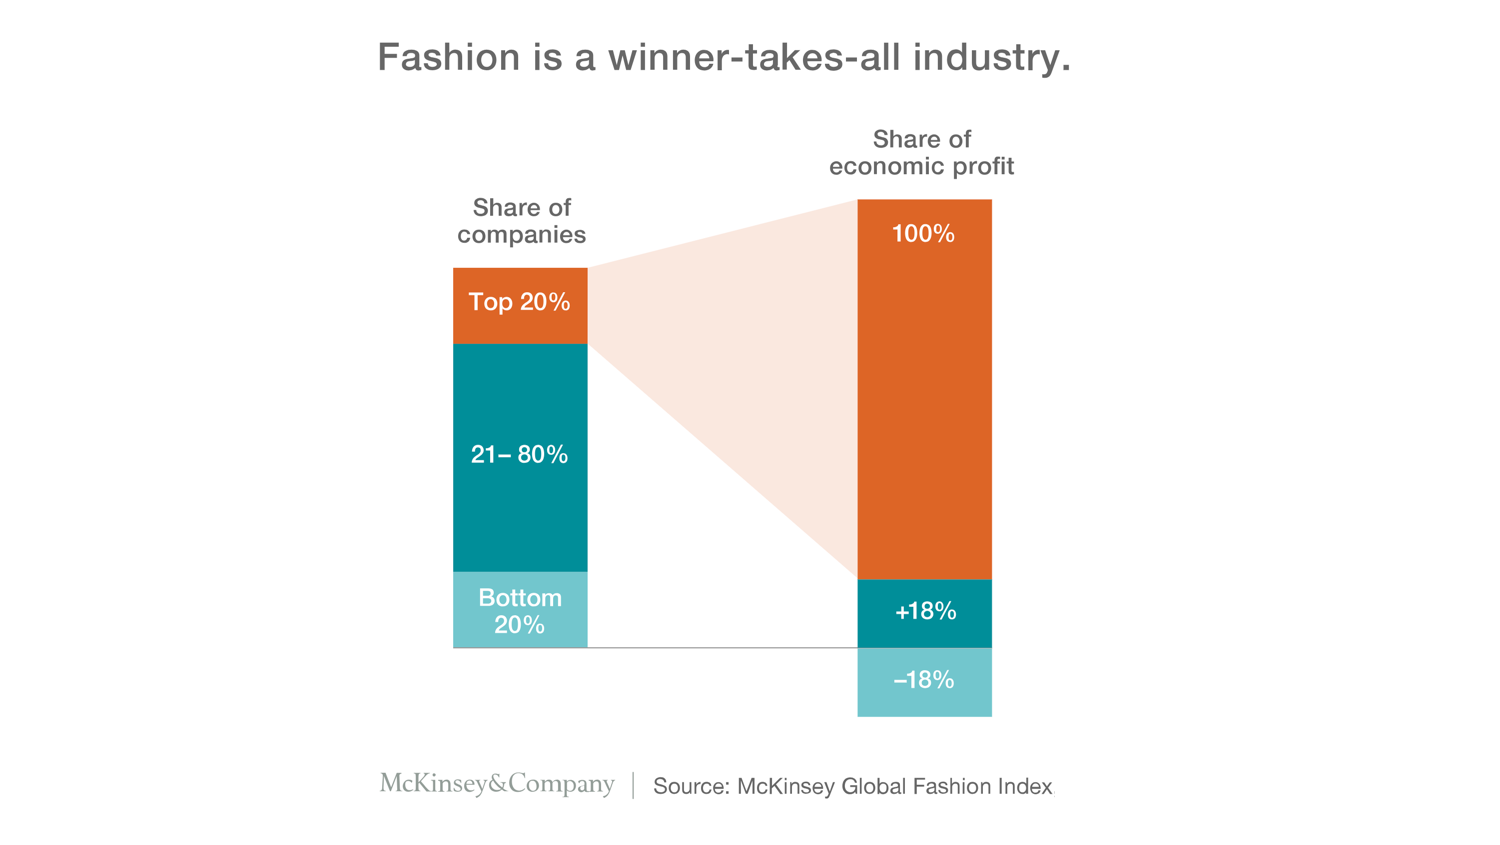 The top 20% of fashion companies create 100% of the economic profit